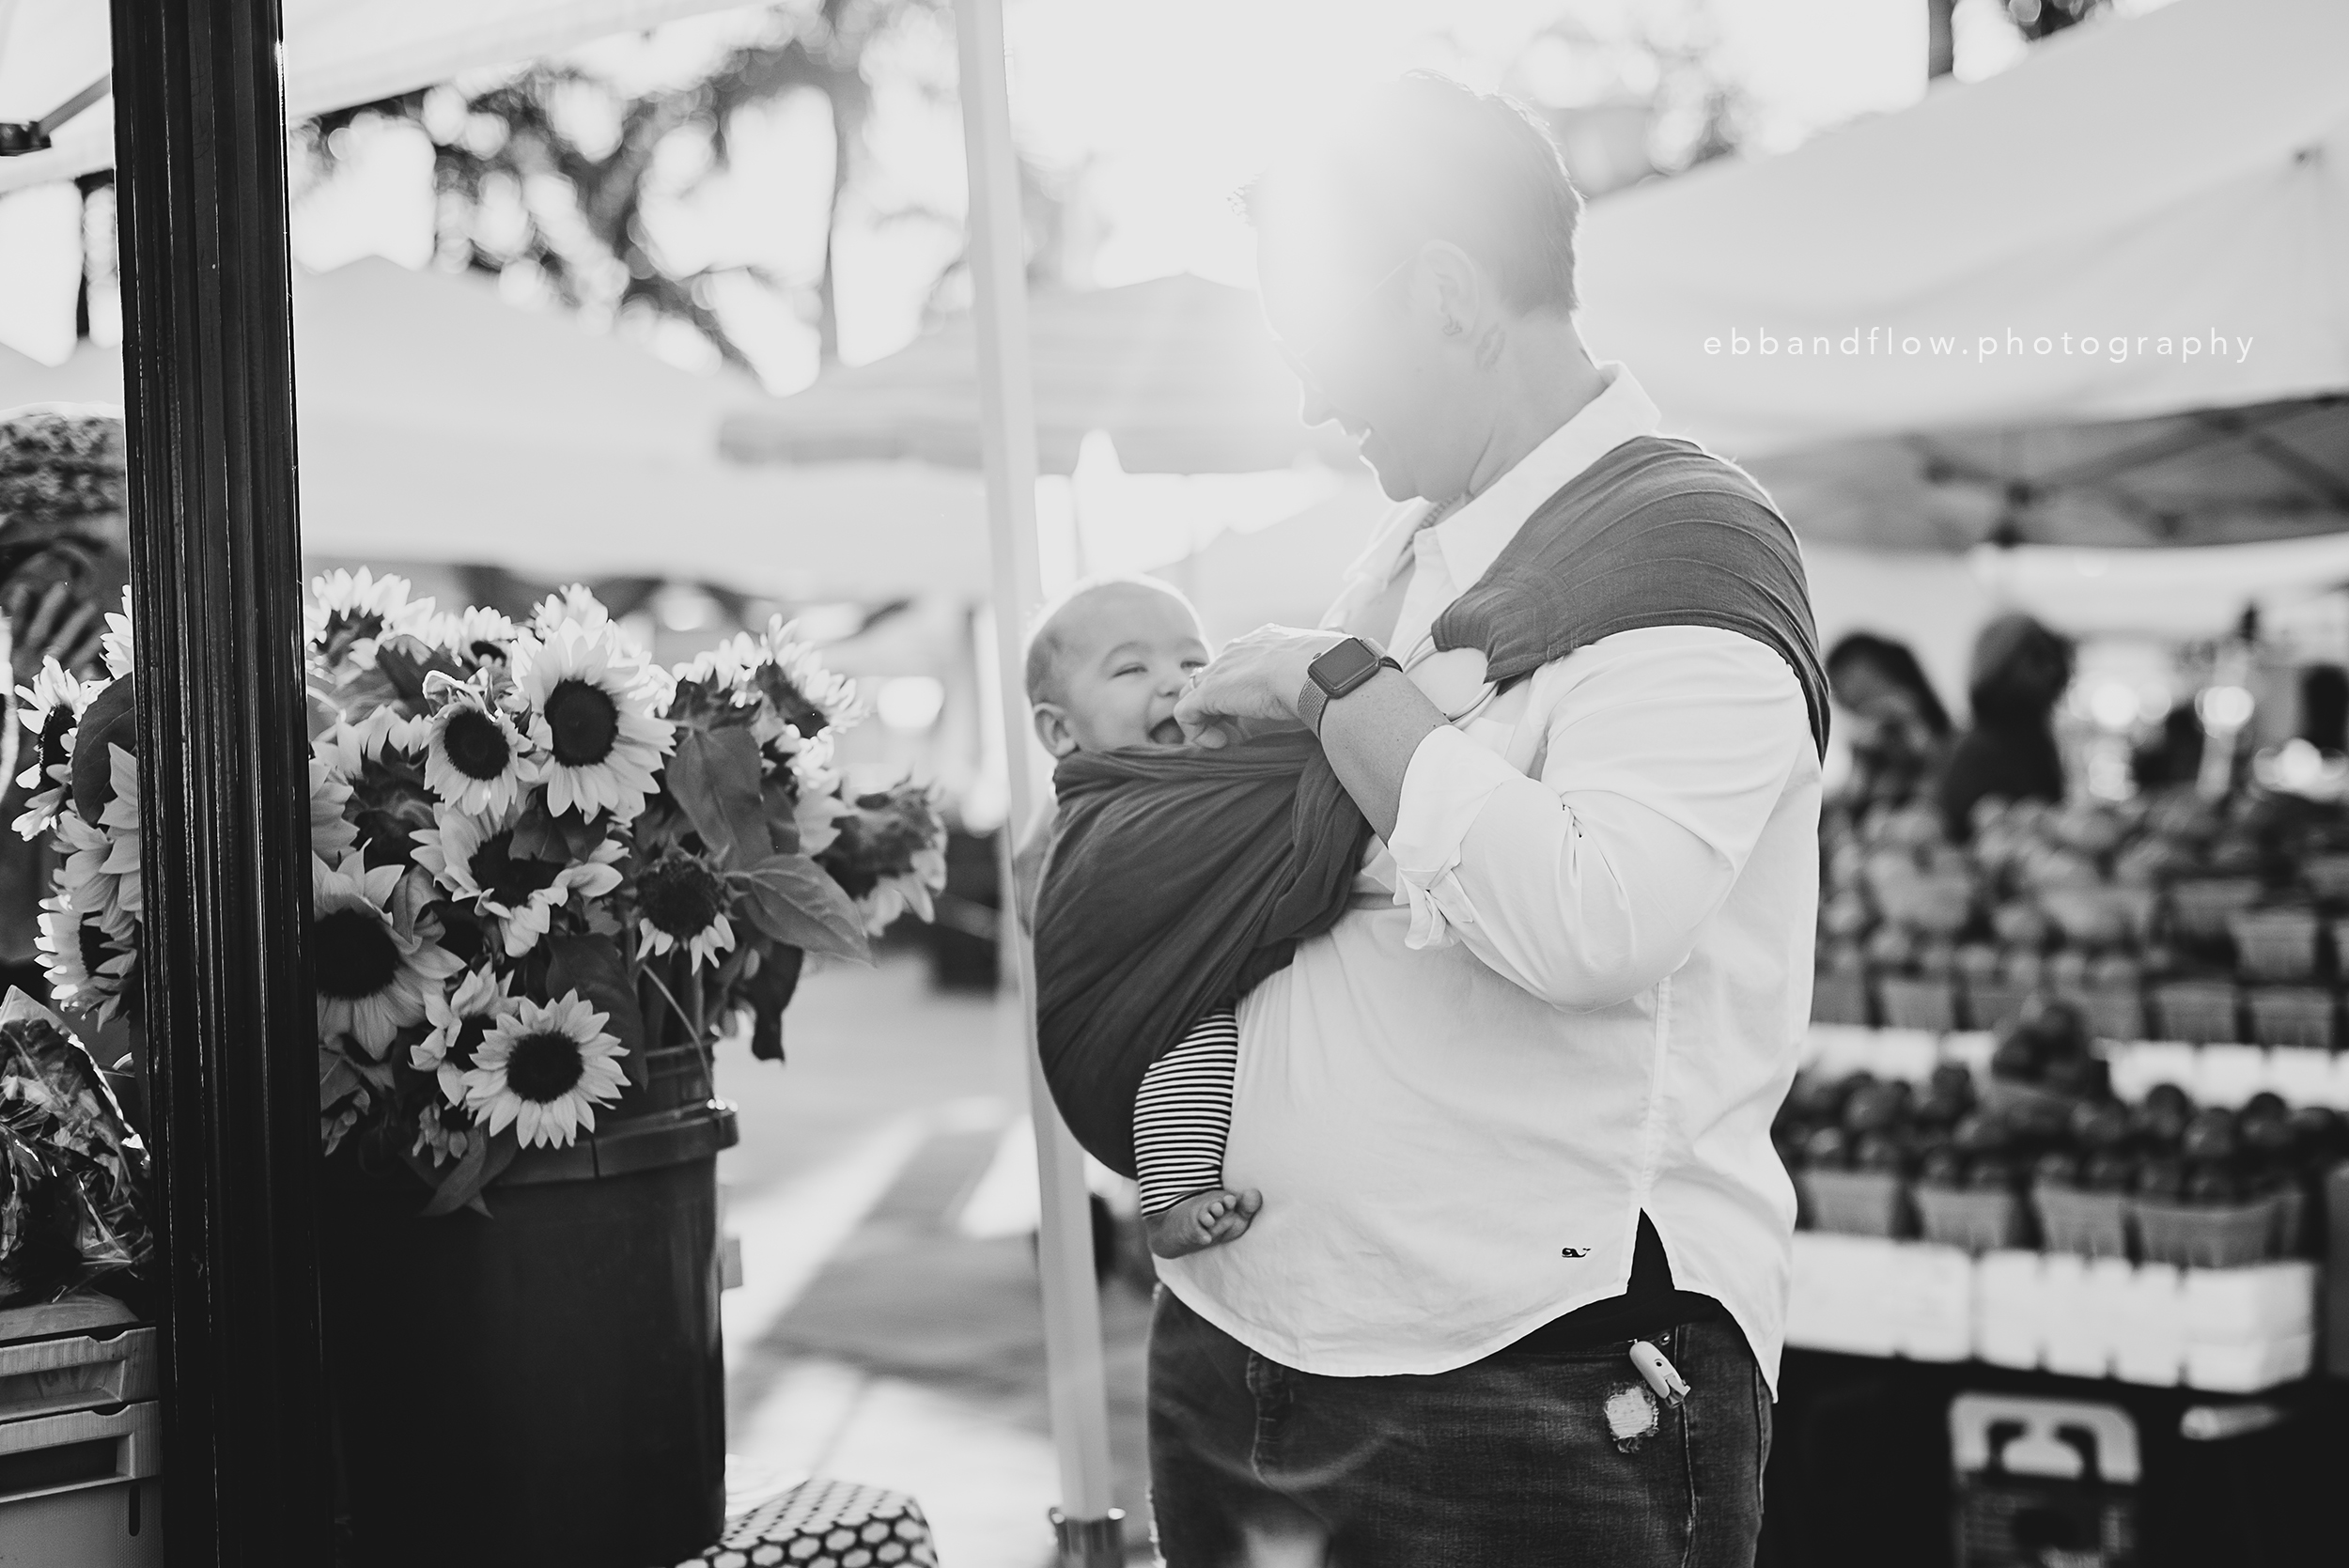 Fort Pierce Breastfeeding Photography - Ebb and Flow Photography -  Ring Sling sunrise at farmers market.jpg